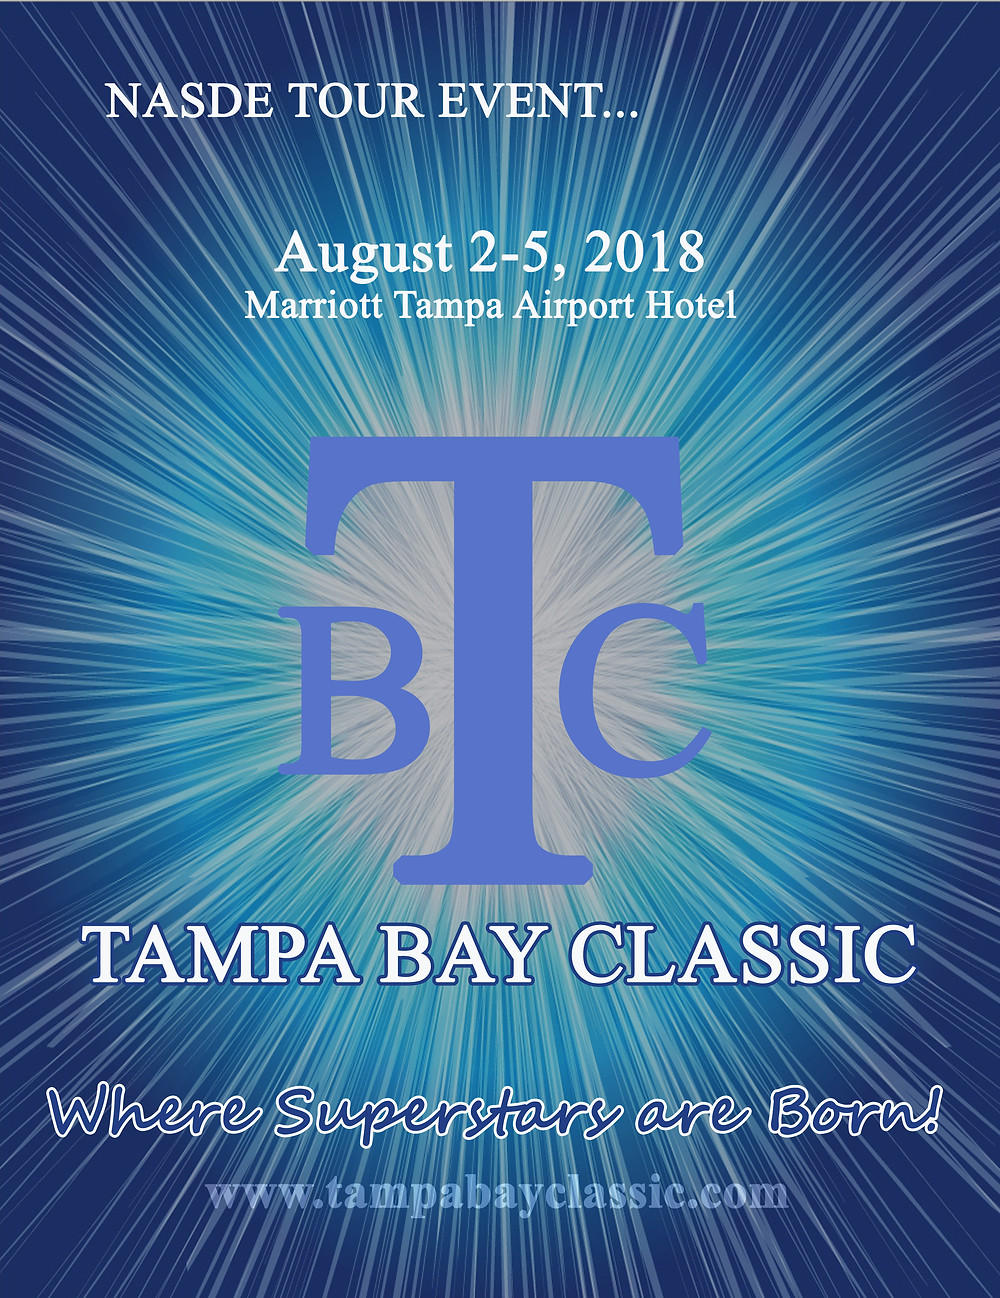 Tampa Bay Classic